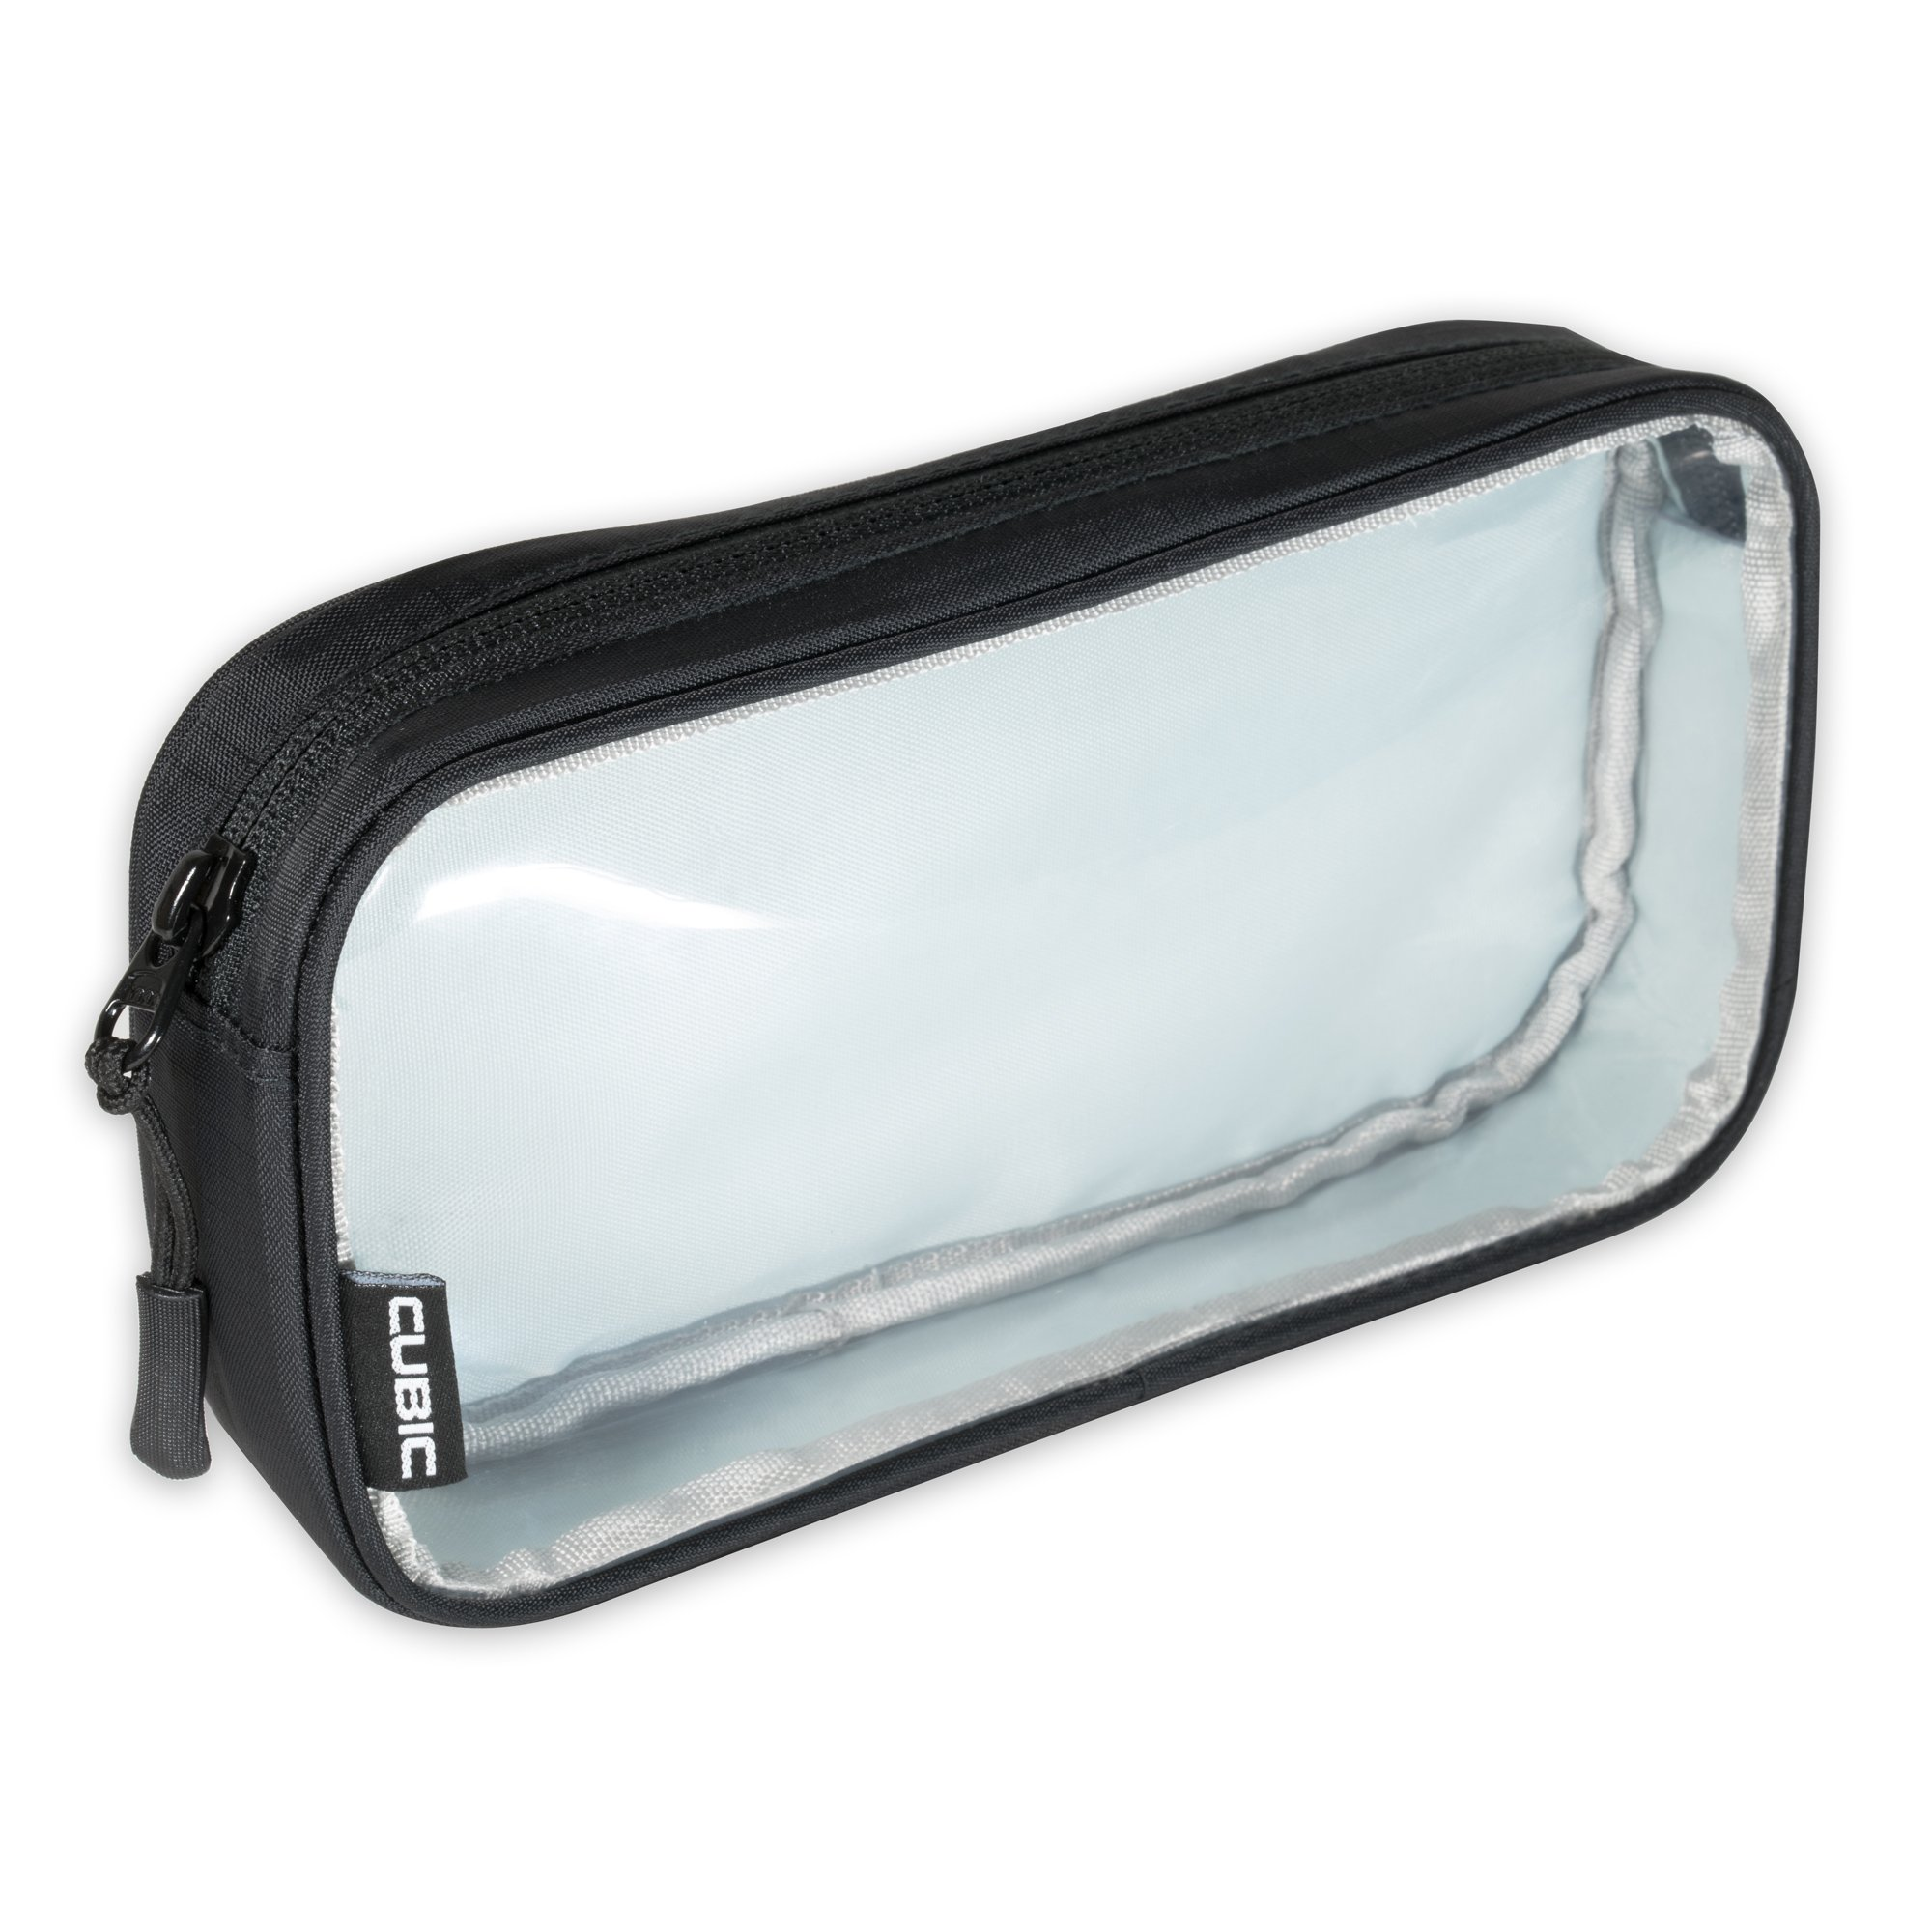 Travel Electronics Organizer by Cubic Gear | Clear Pouch, Small Travel Accessories Bag, Cable Management